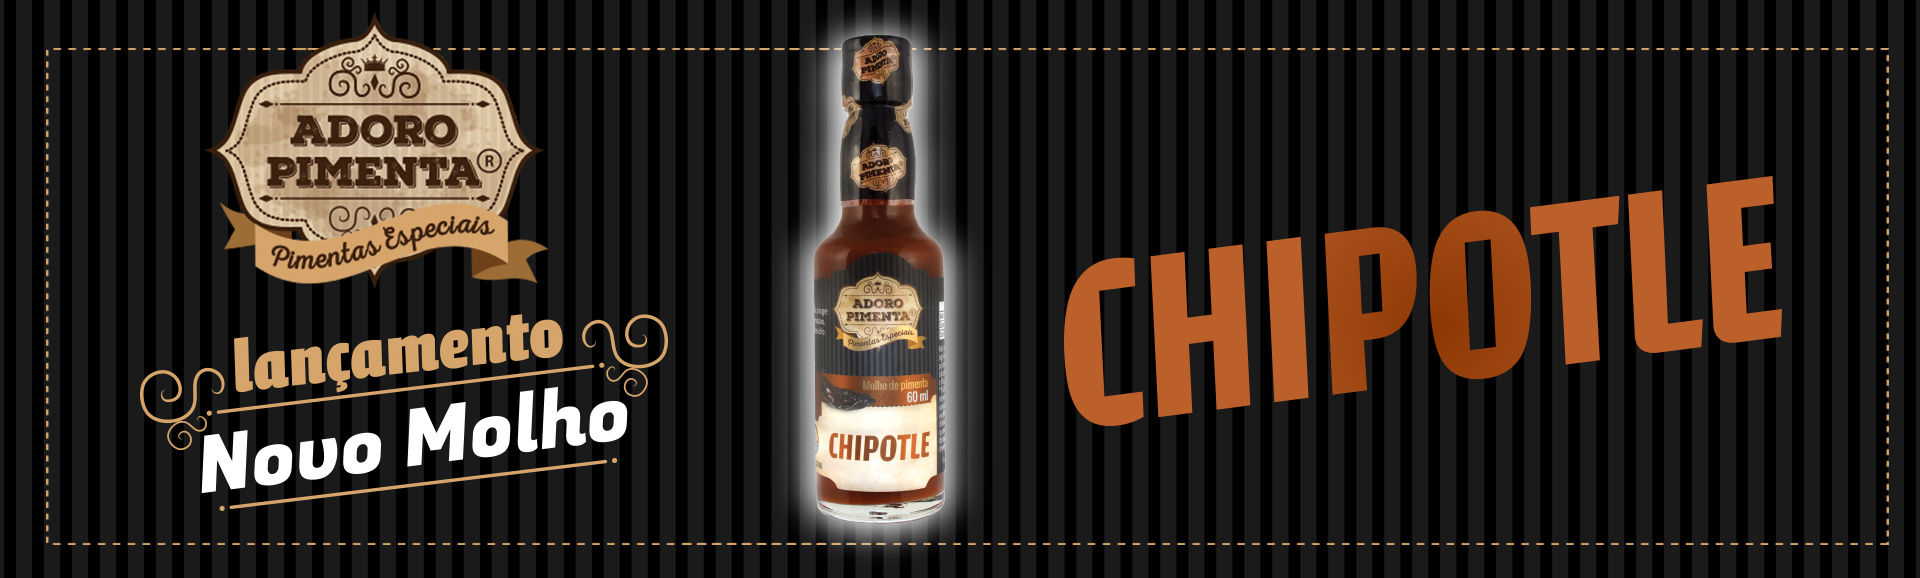 banner-molhos-chipotle